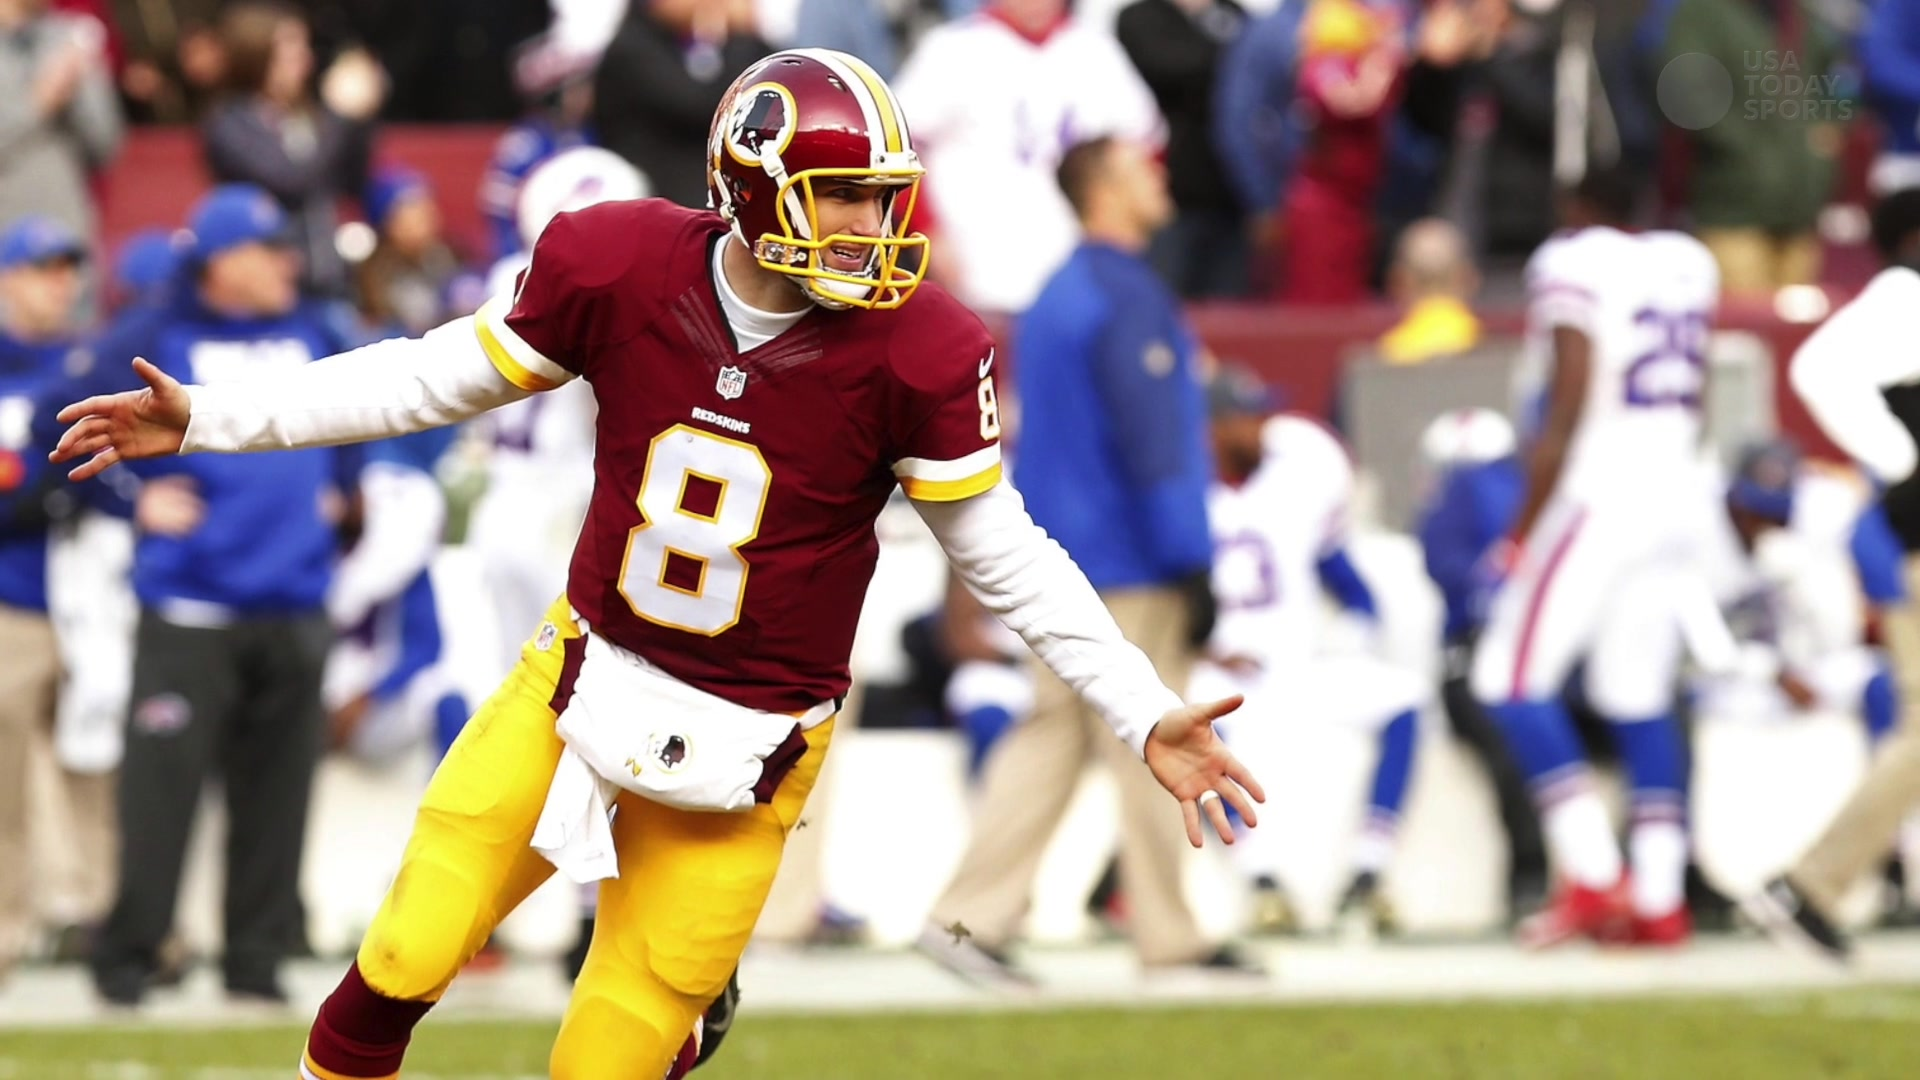 Redskins Place Franchise Tag on Kirk Cousins